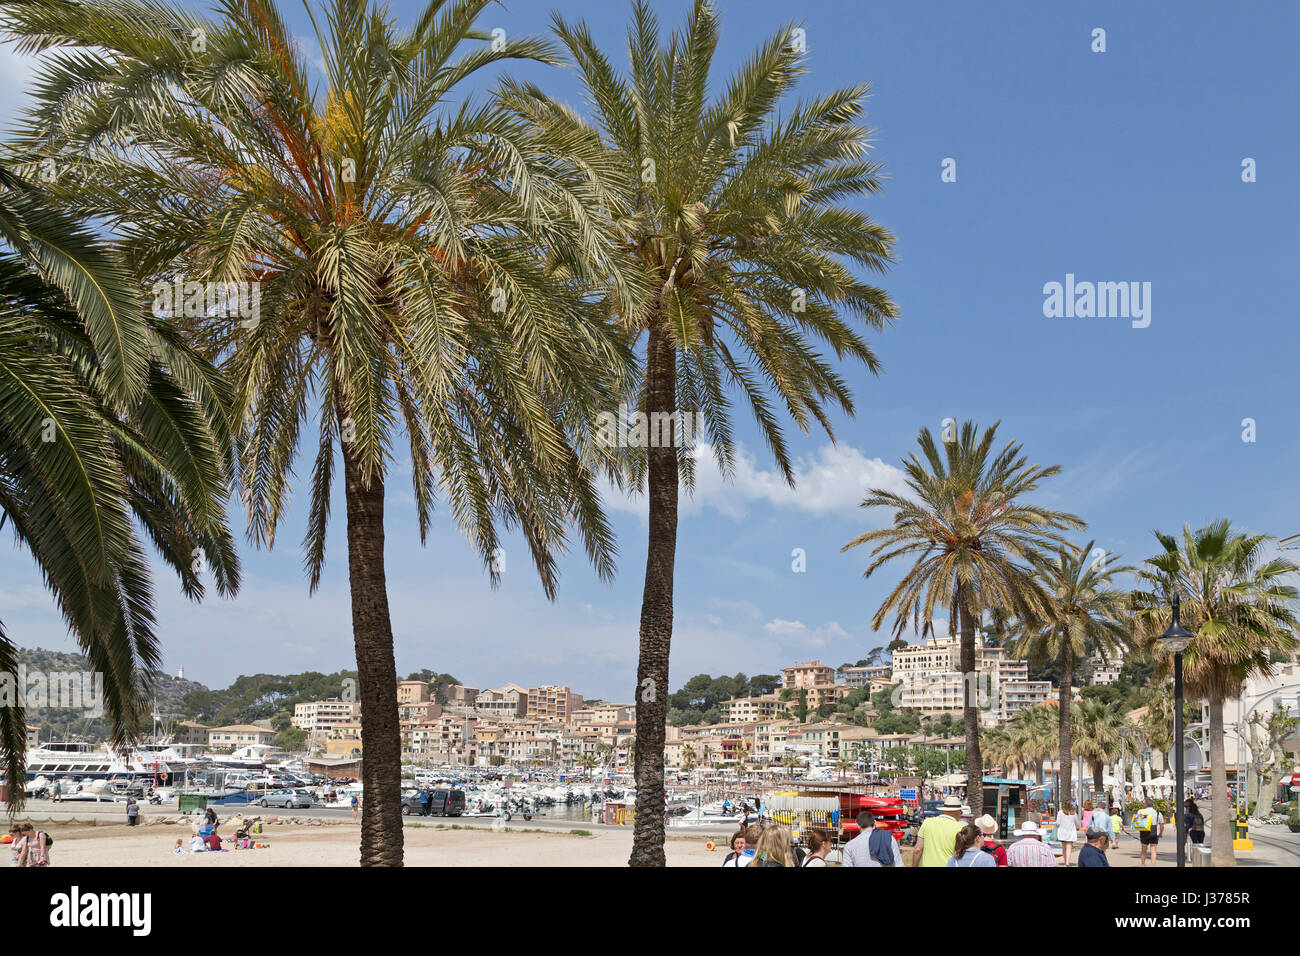 direkt am Meer in Port de Sóller, Mallorca, Spanien Stockbild